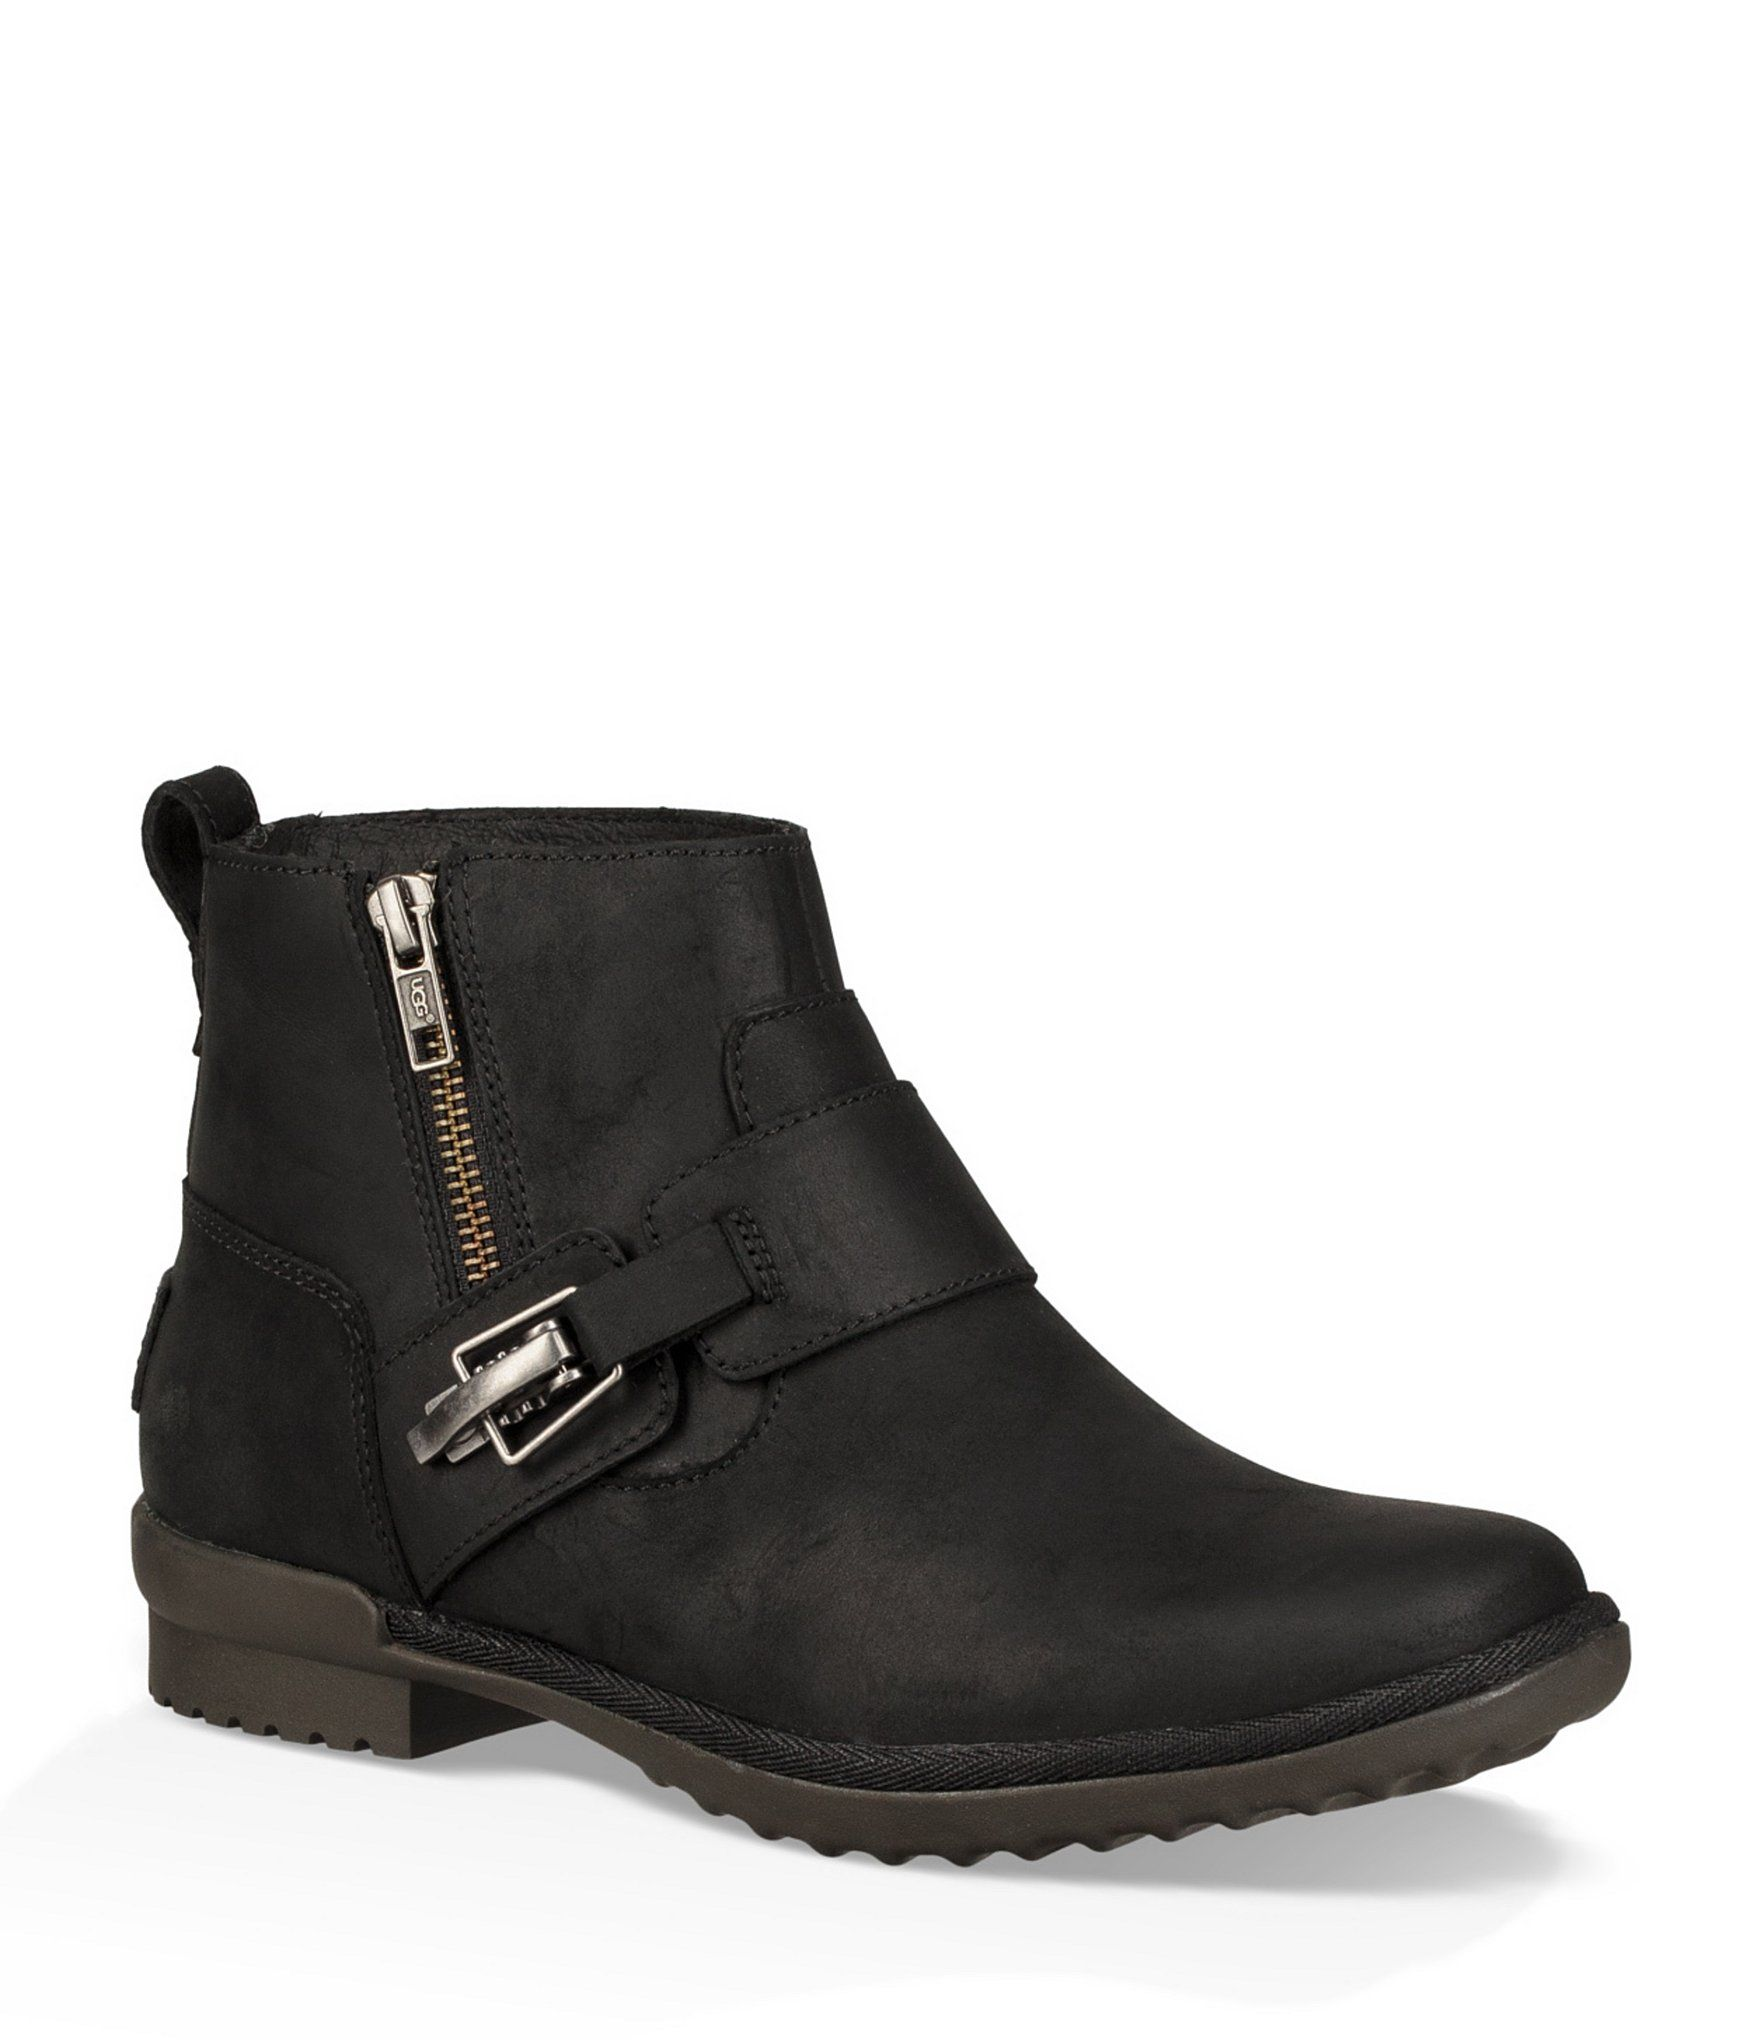 f3205fa2e49 Shop for UGG® Cheyne Waterproof Leather Buckle Detail Booties at ...